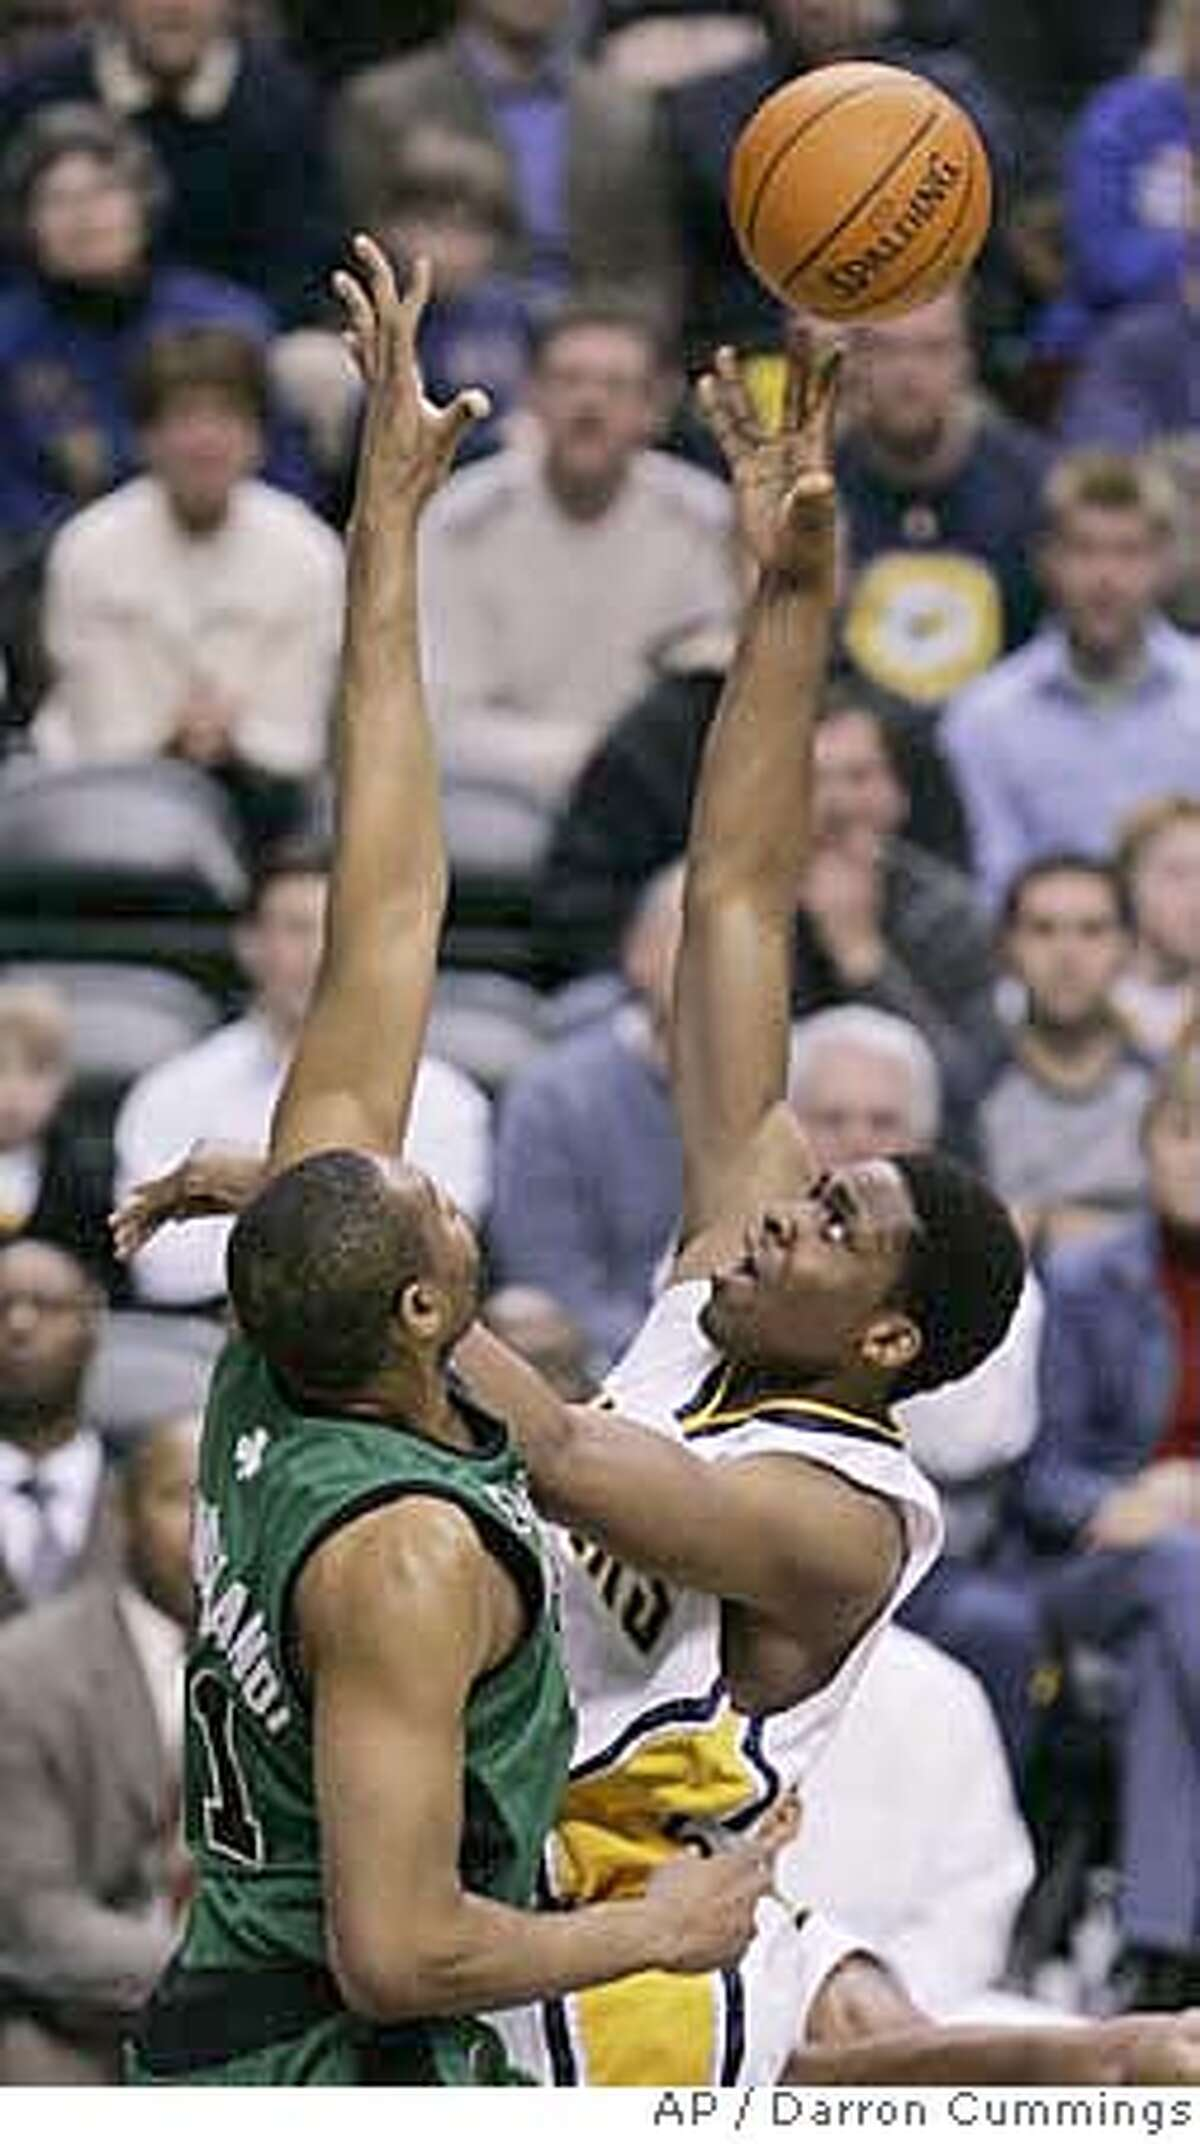 Indiana Pacers forward Ike Diogu, right, puts up a shot over Boston Celtics center Michael Olowokandi, of Nigeria, during the second quarter of an NBA basketball game in Indianapolis, Tuesday, Jan. 30, 2007. (AP Photo/Darron Cummings)